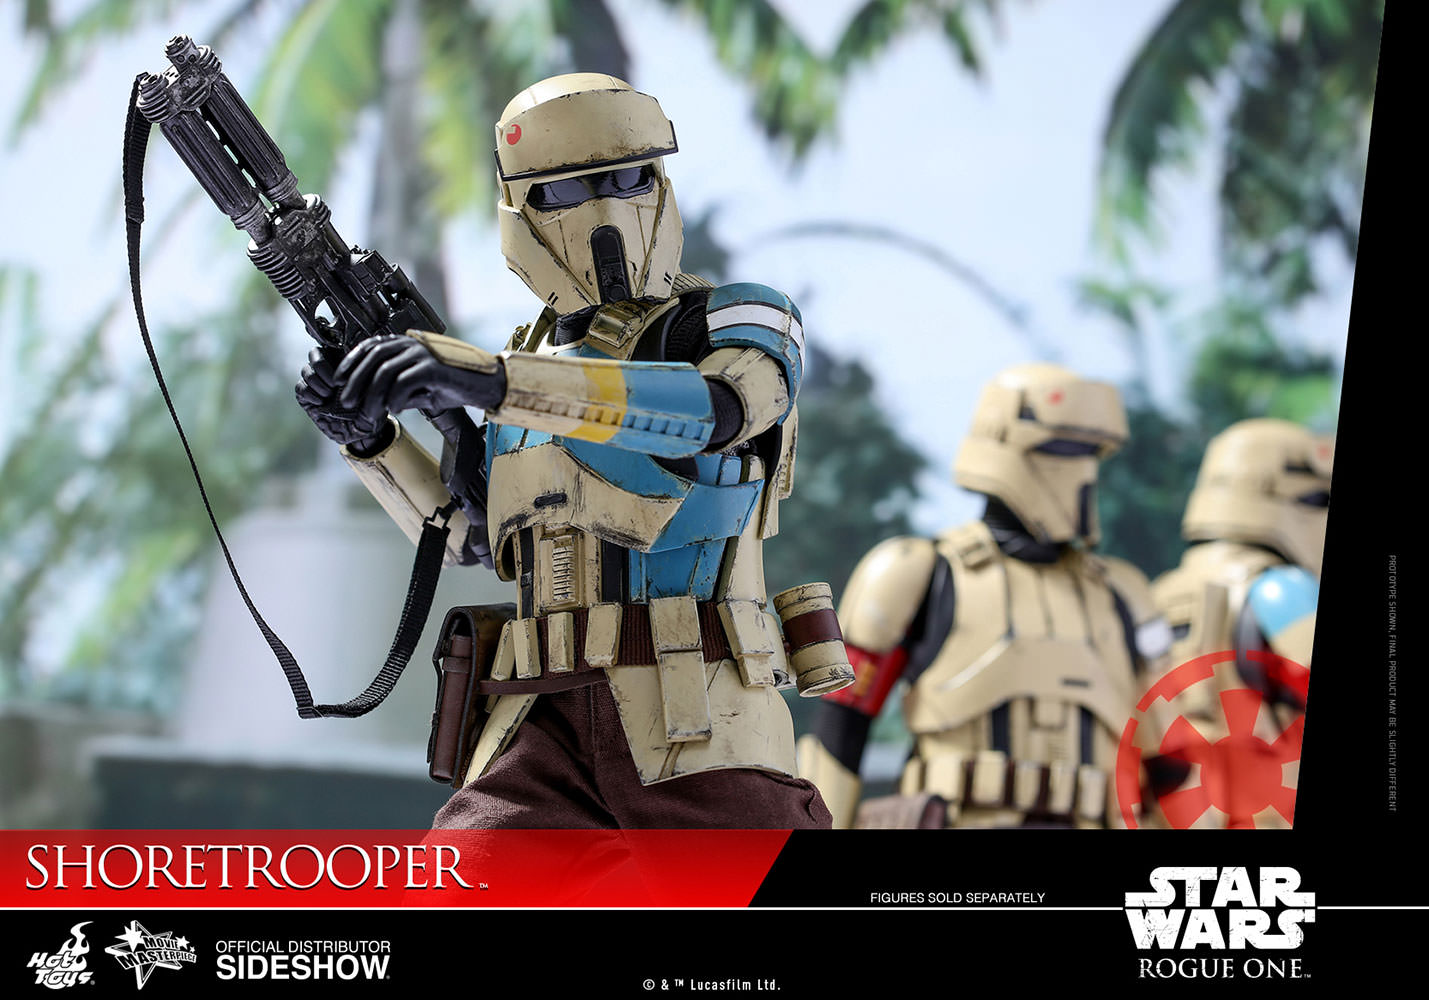 szmk_sideshow_star_wars_shoretrooper_4.jpg